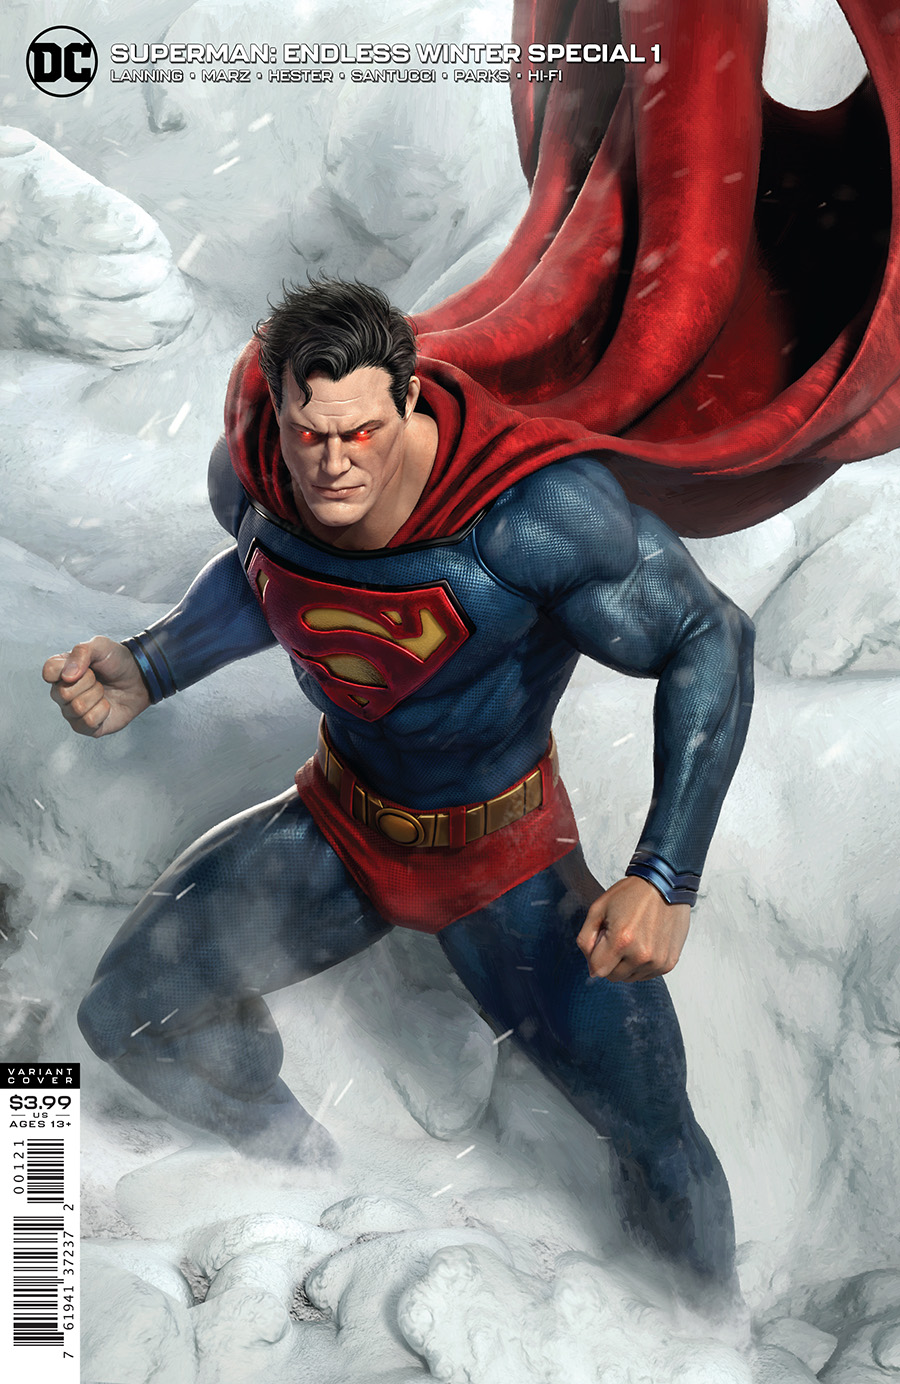 Superman: Endless Winter Special #1 - The Aspiring Kryptonian